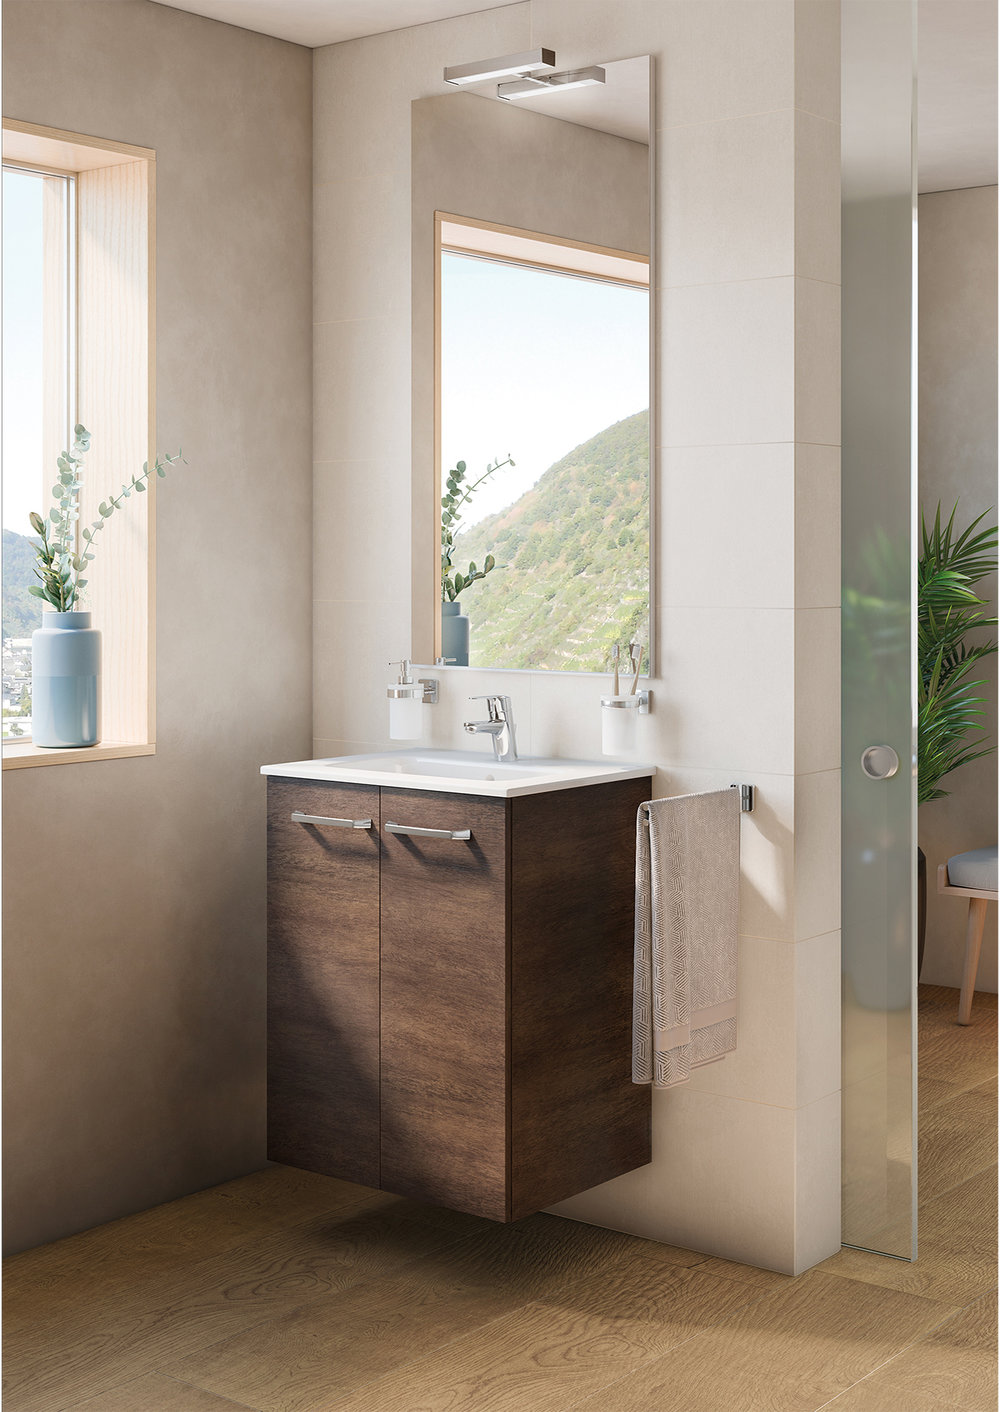 ASTER WALL-MOUNT VANITY WITH DOORS CEDAR WOOD VENEER - Finish: Textured MelamineDesign: Cedar Wood VeneerWall-mounted24